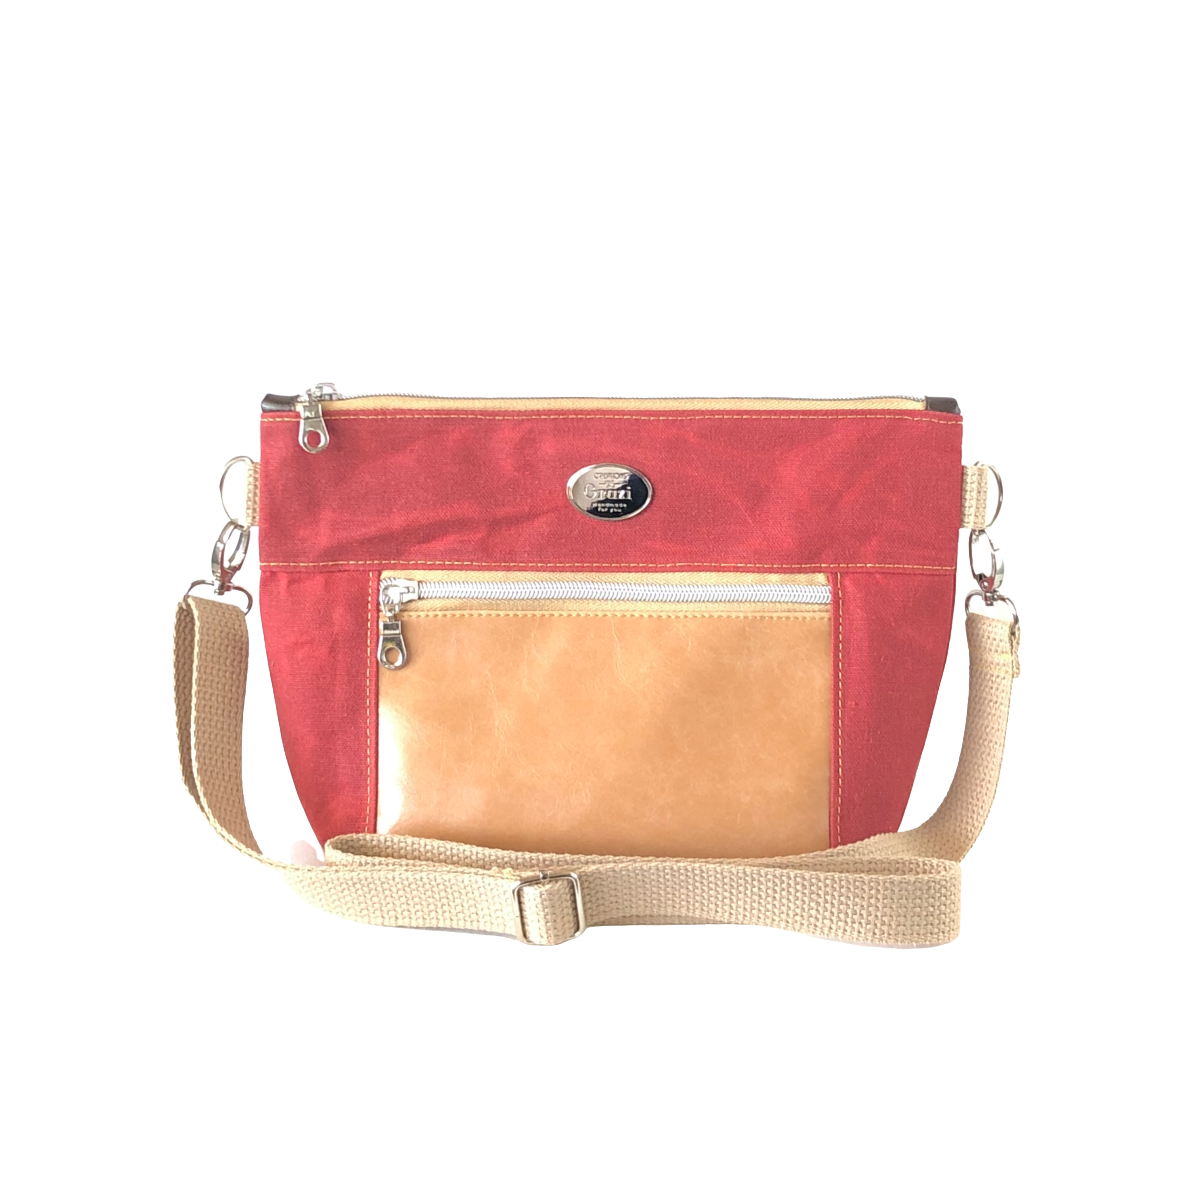 Wax Canvas Faux Leather Crossbody Bag - Ruby/Latte